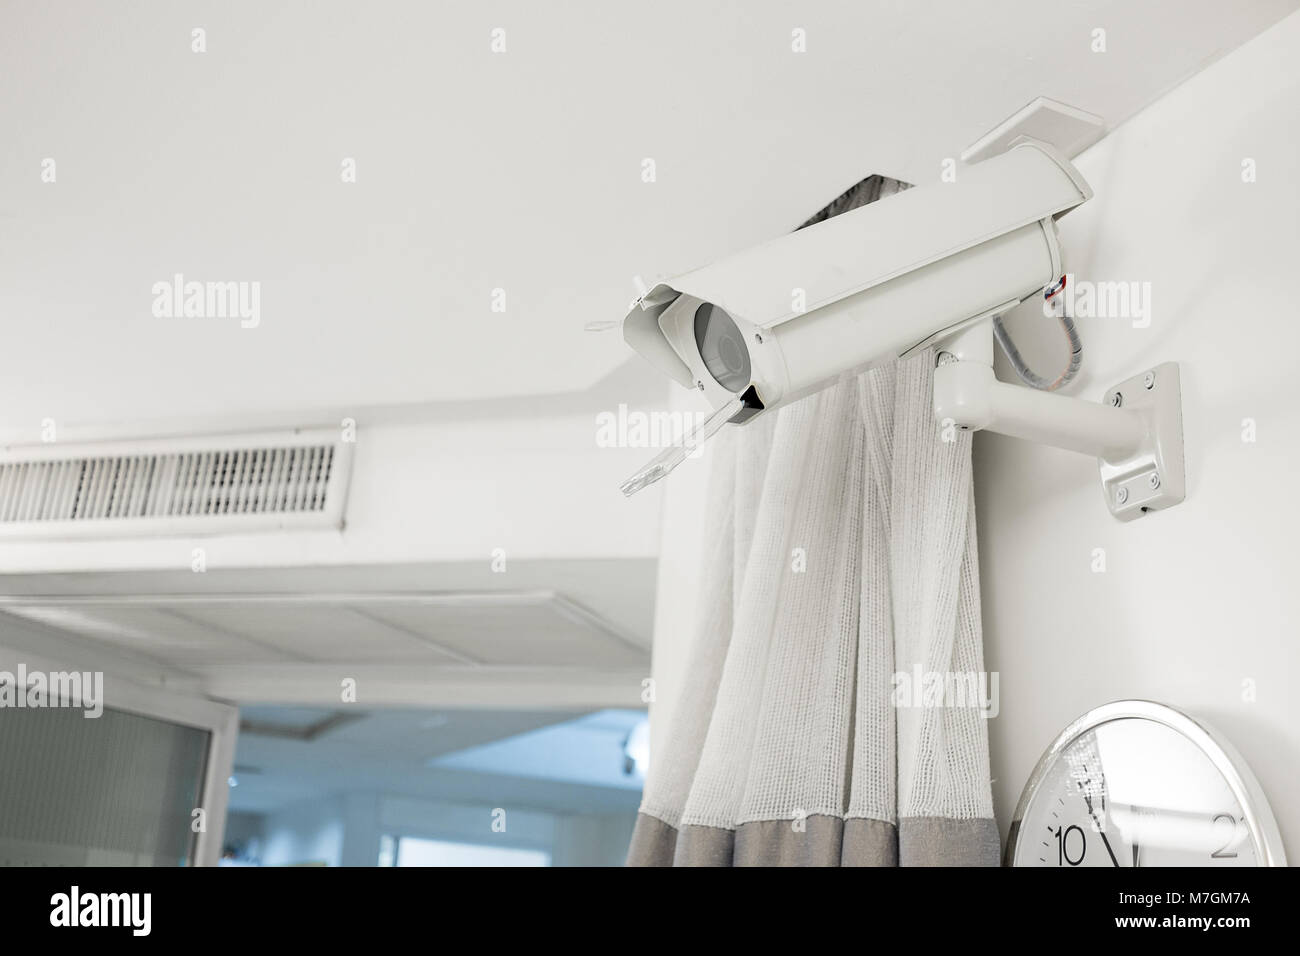 Security camera in ICU and emergency, ER room in the hospital to watch patient real time and to protect patient - Stock Image